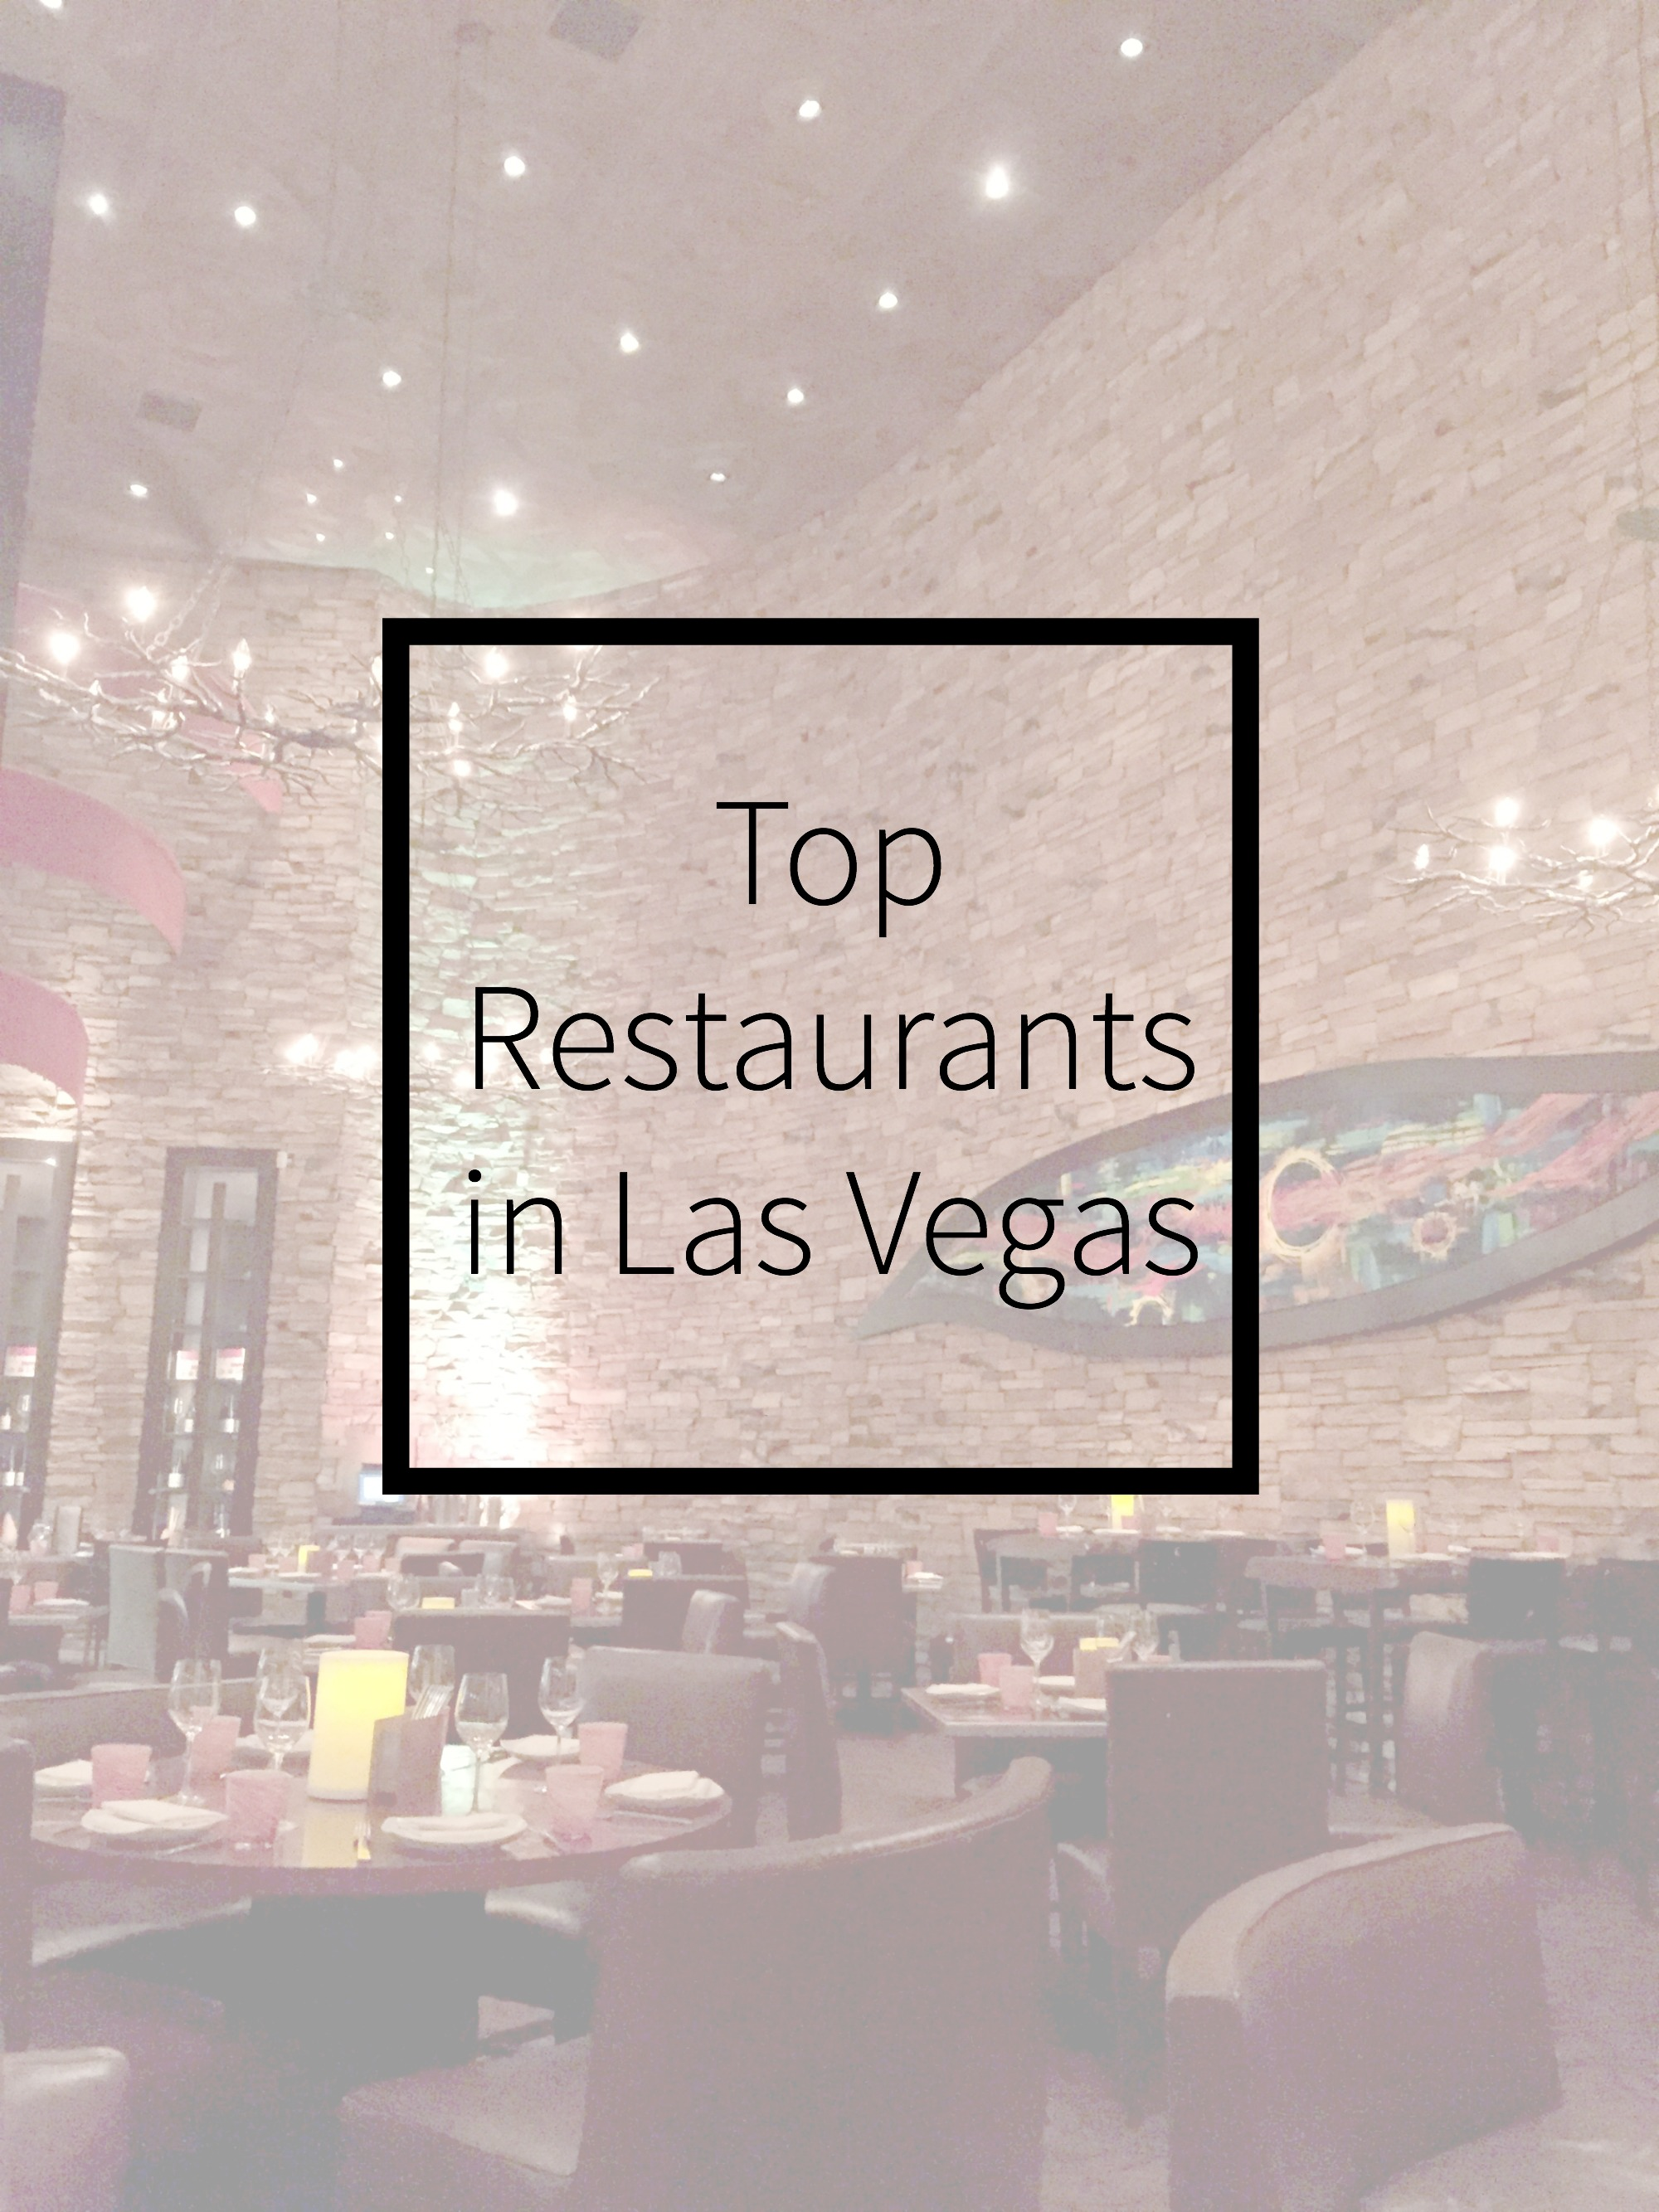 Top Restaurants in Las Vegas